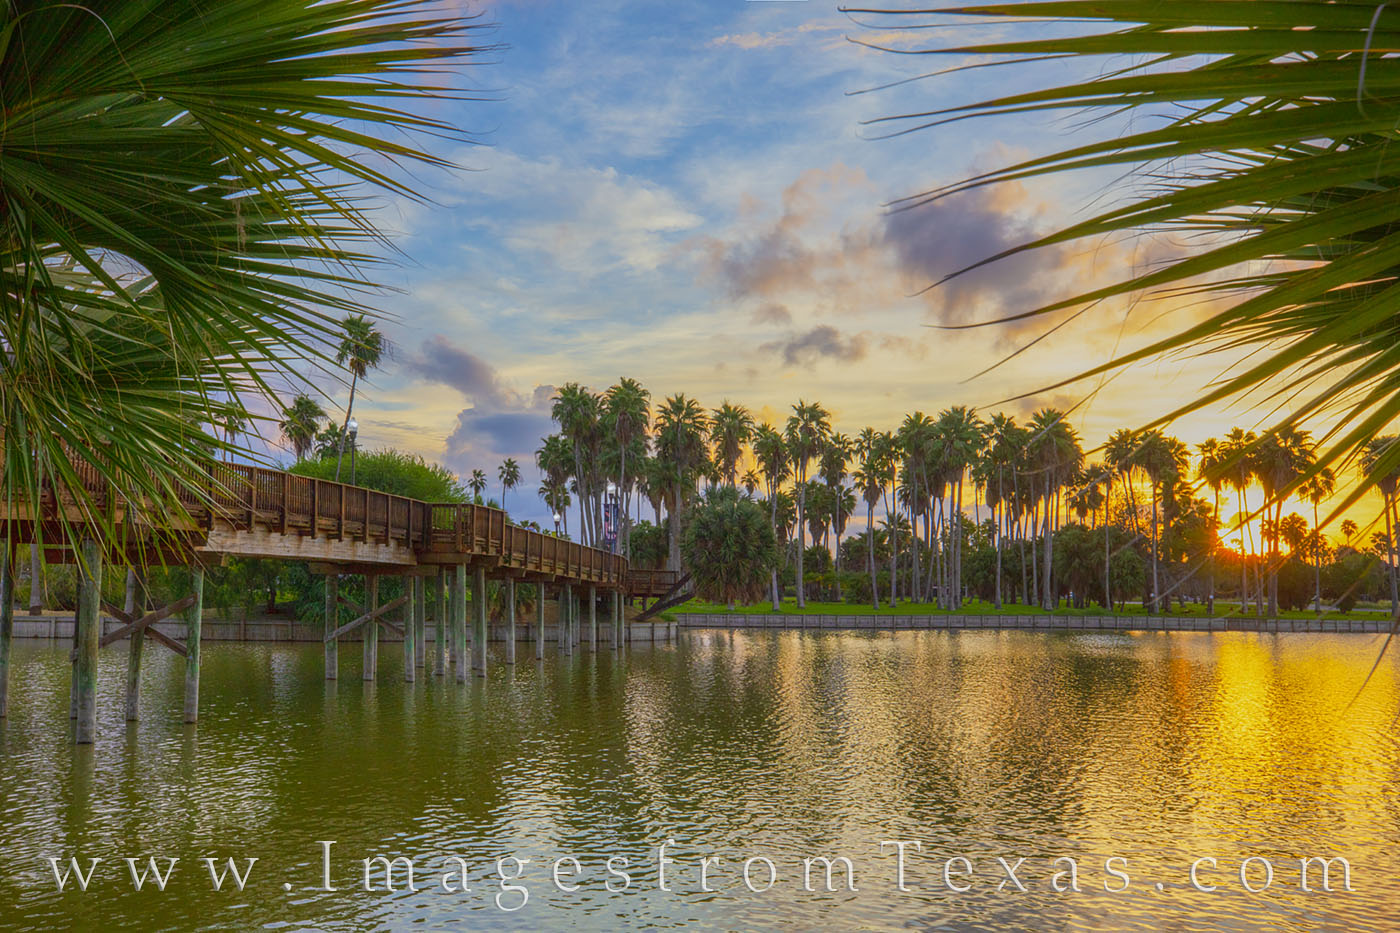 brownsville, resaca, bridge, sunset, water, reflection, south texas, border town, texas coast, photo